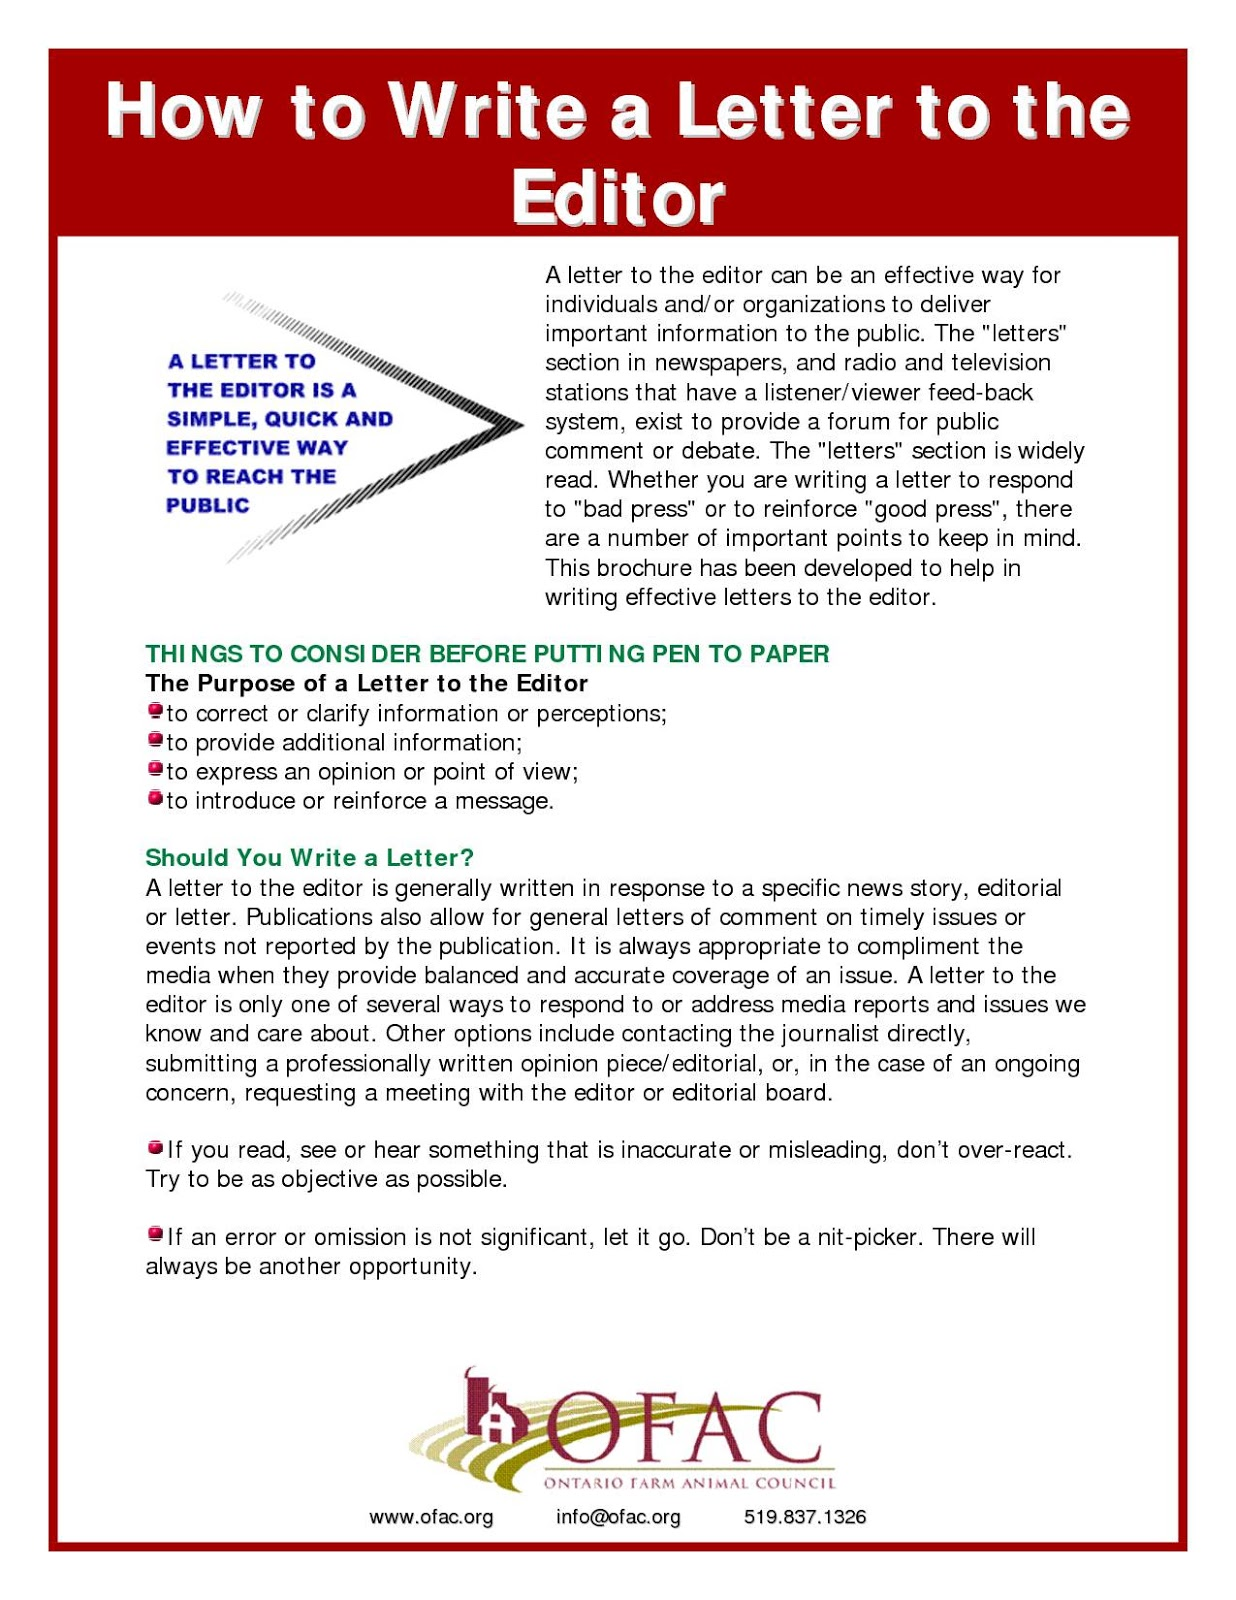 Editor Letter – Sample Letter To The Editor